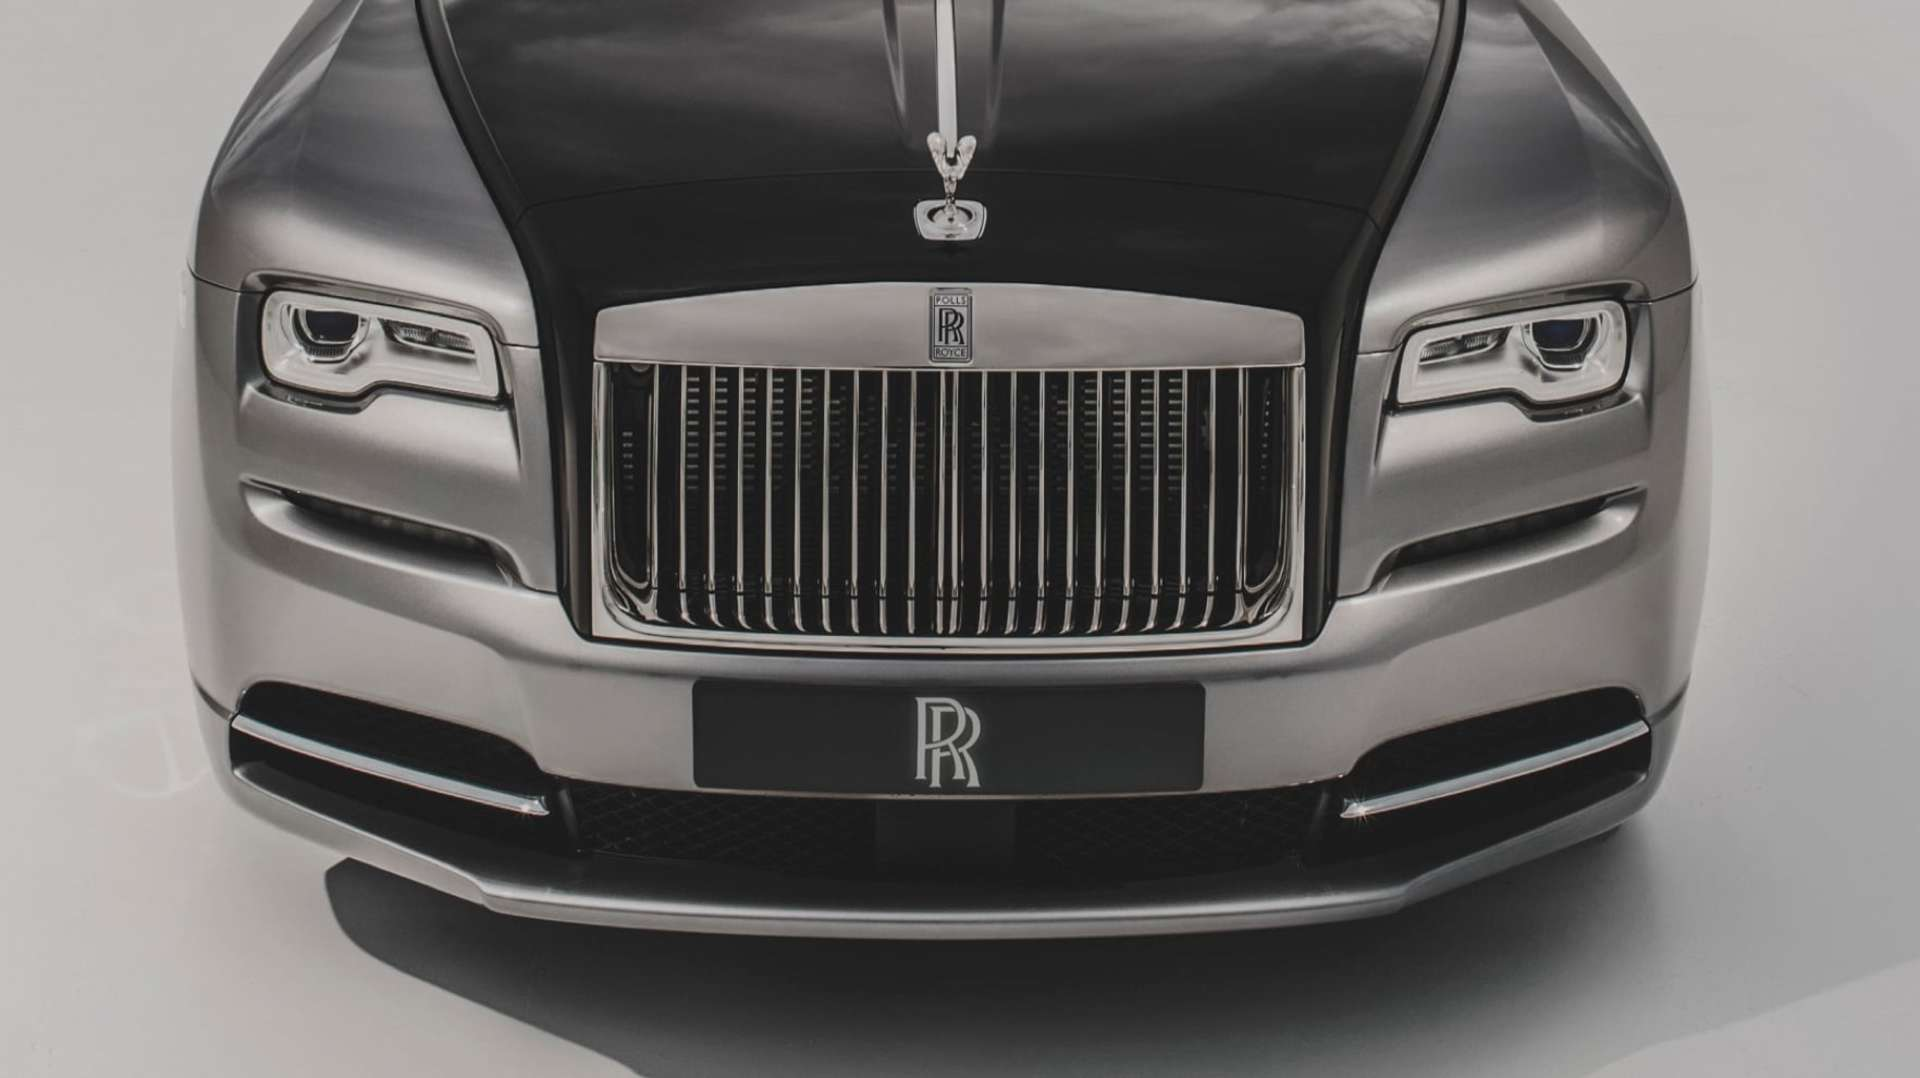 Rolls-Royce Wraith front view, highlighting grille and Rolls-Royce RR logo - white backdrop